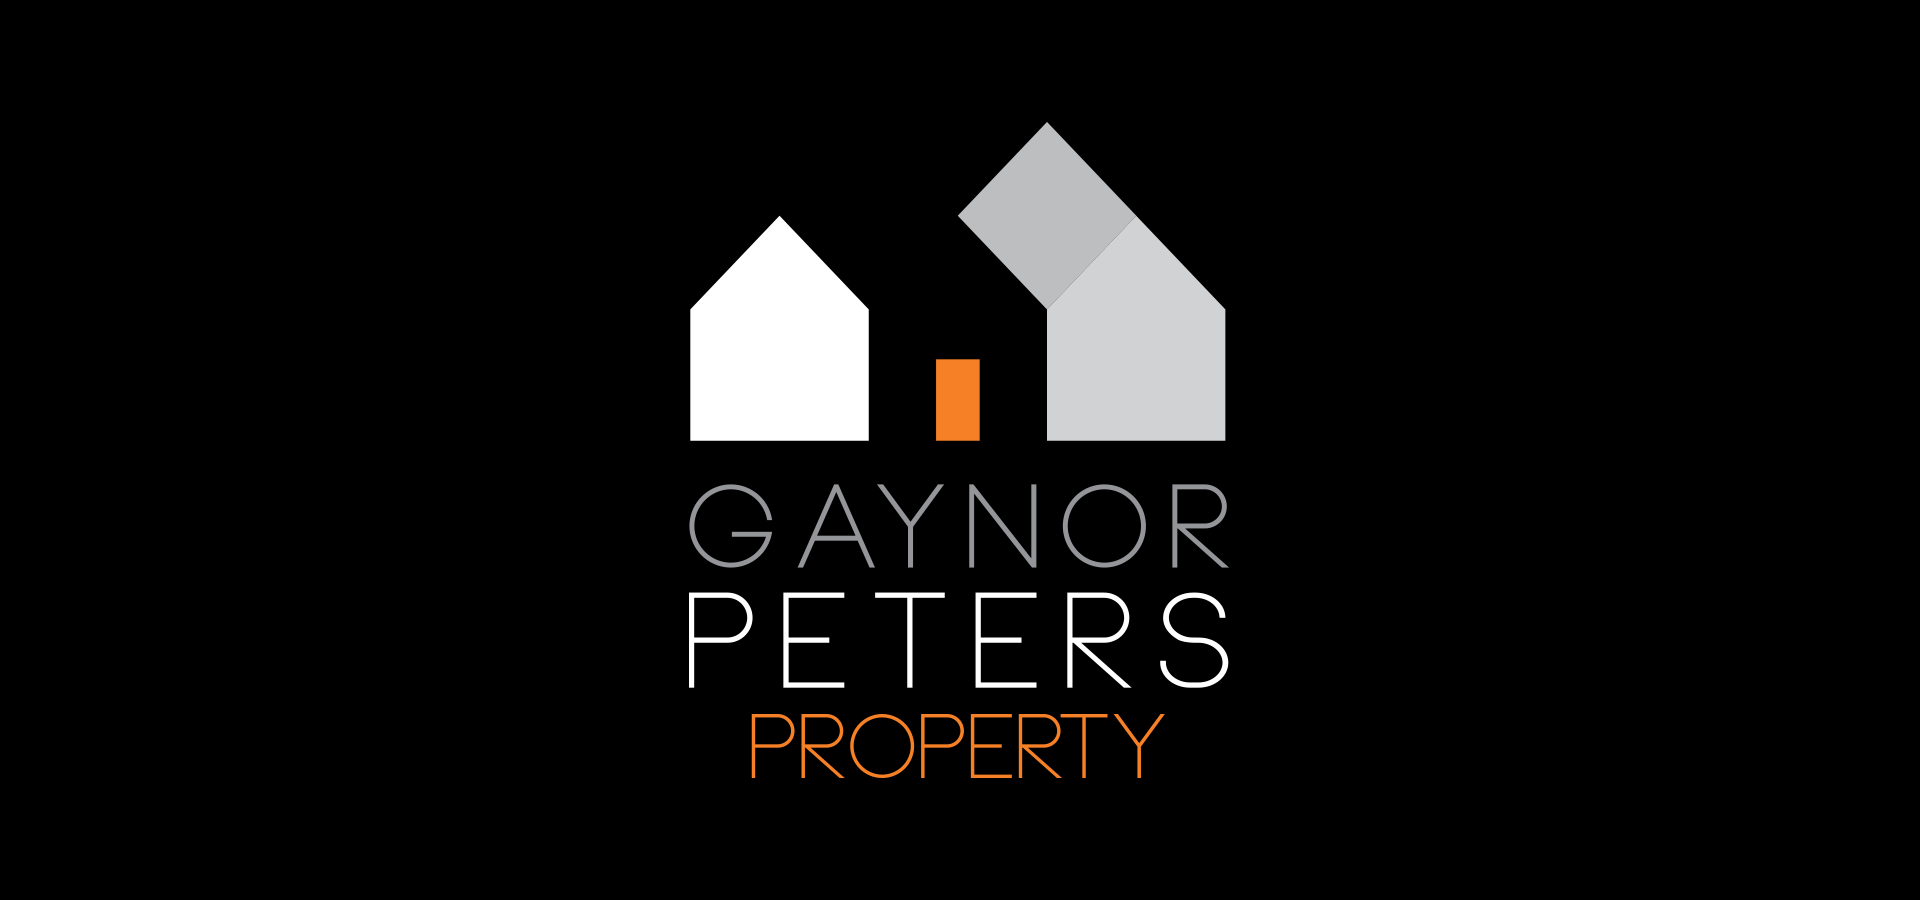 Gaynor Peters Property Logo